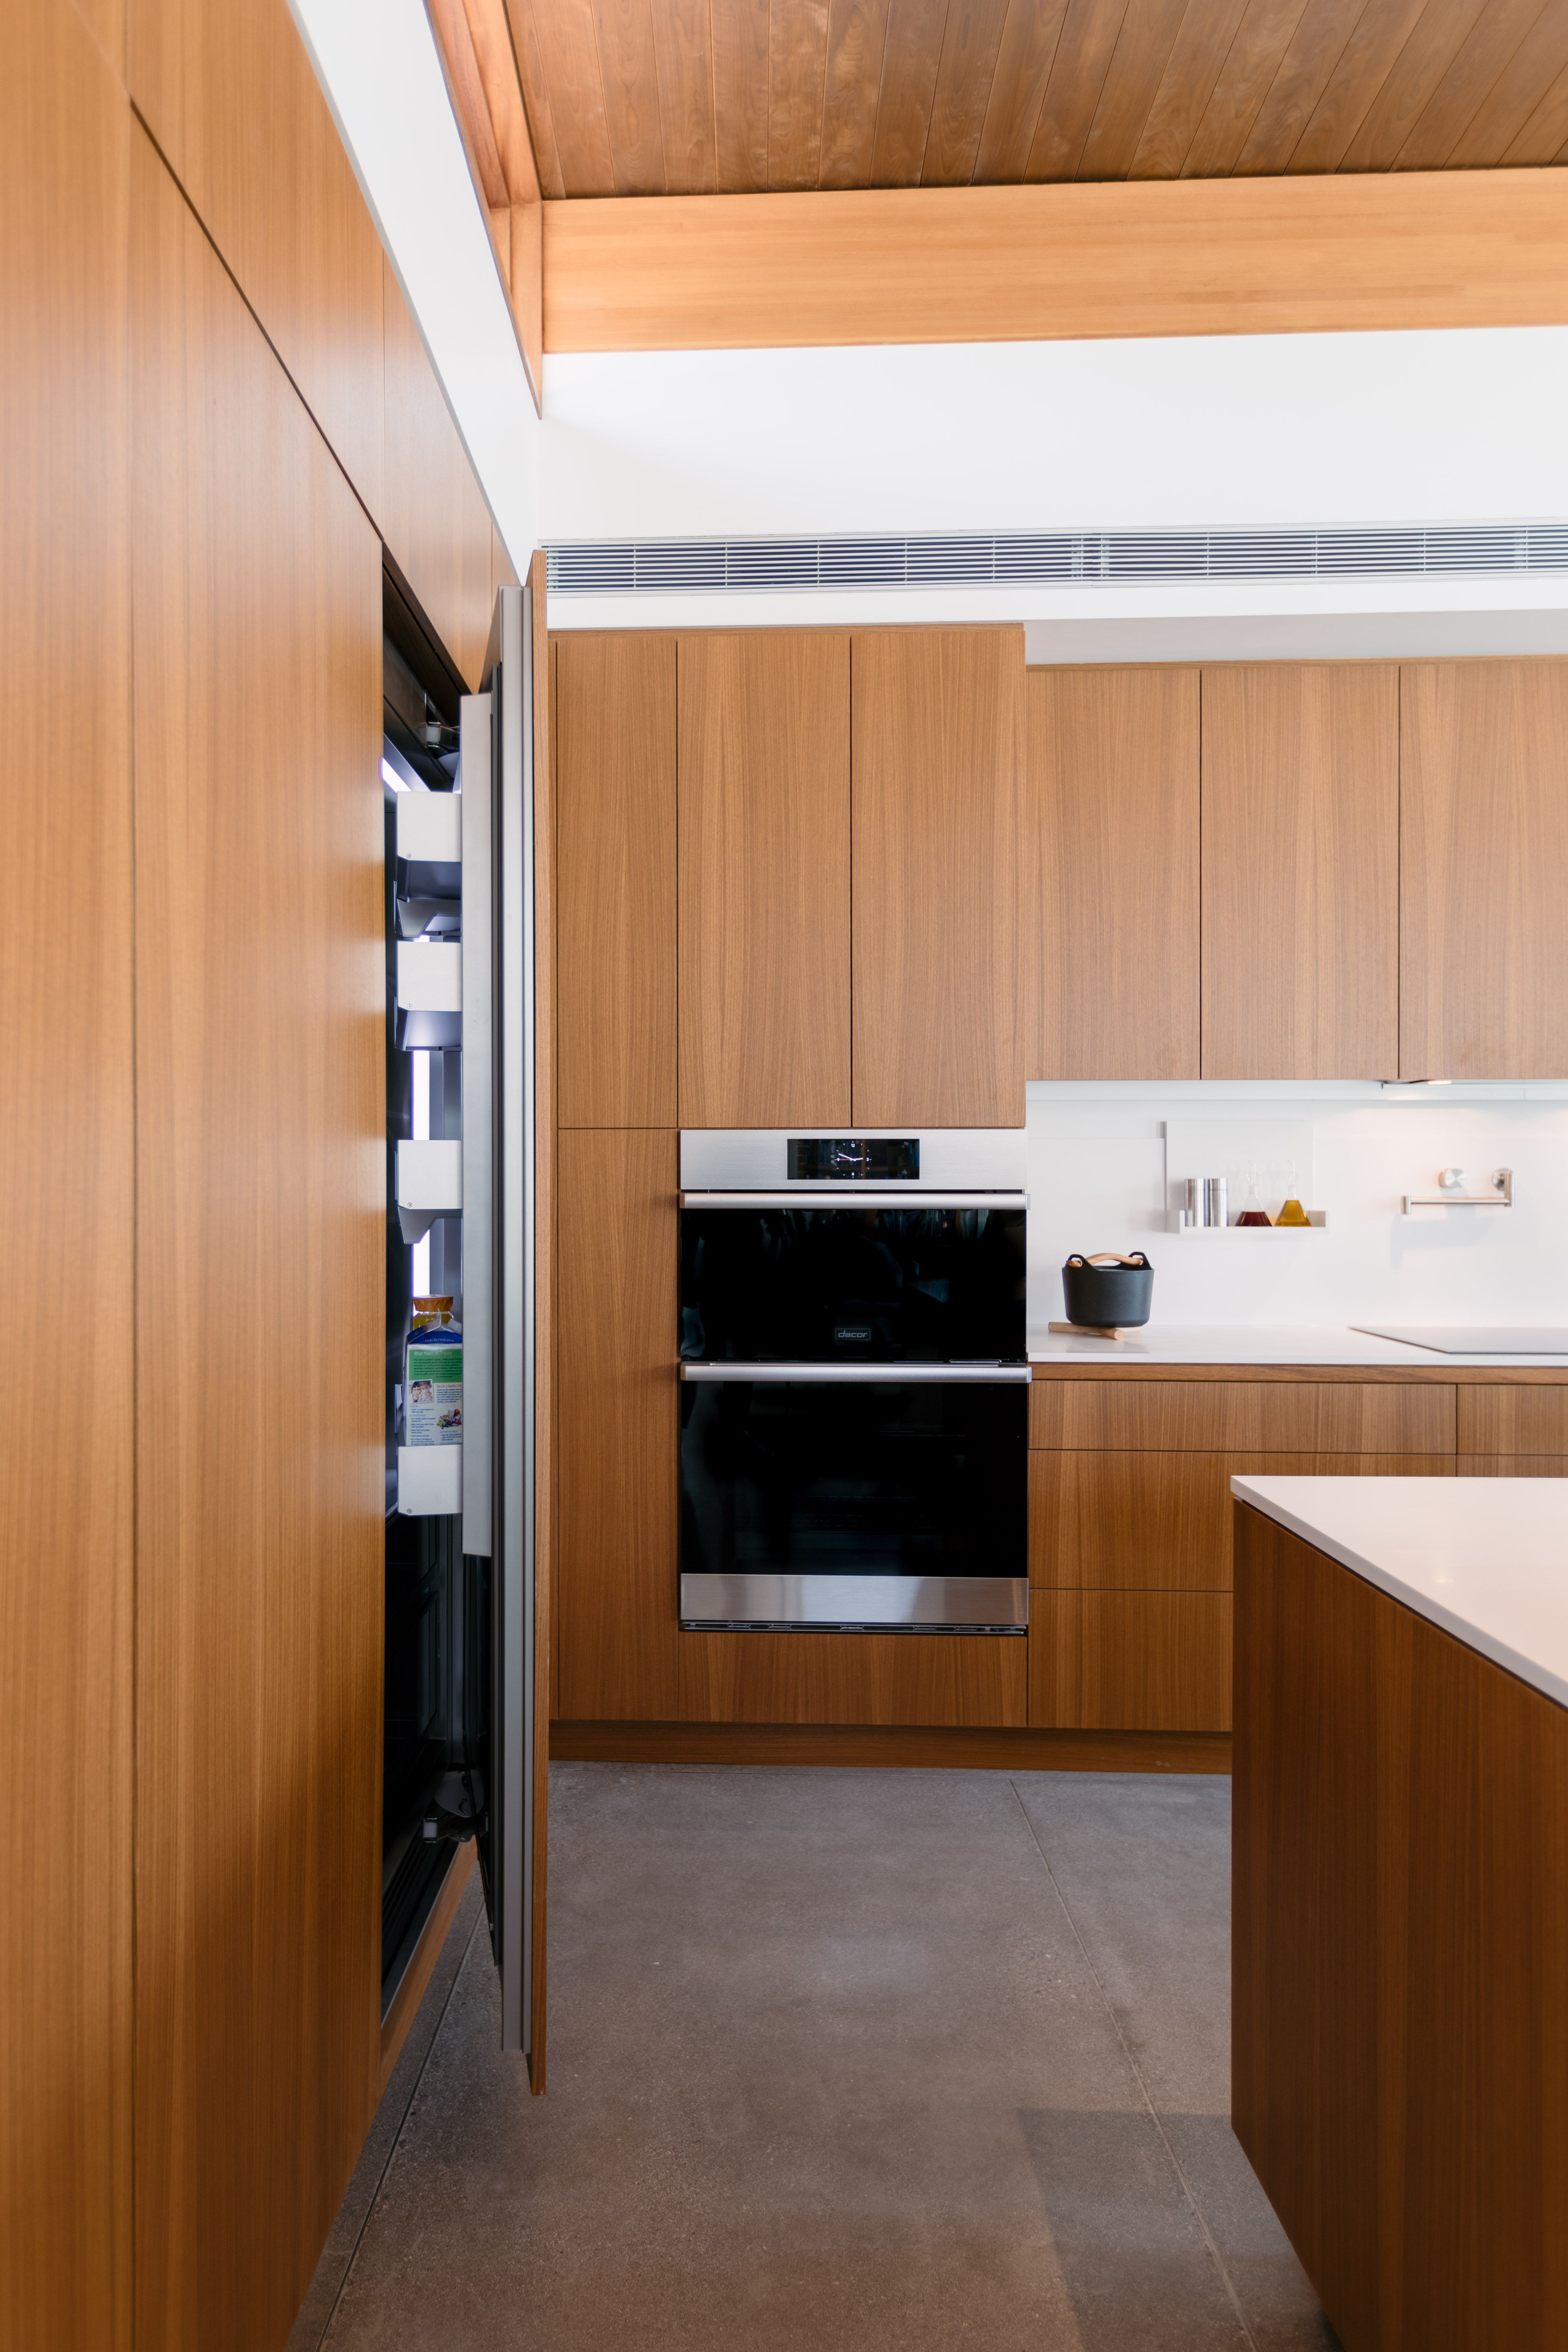 Get Inspired With The Axiom Desert House By Dacor And Turkel Design In 2020 Contemporary Kitchen Design Simple Kitchen Contemporary Kitchen